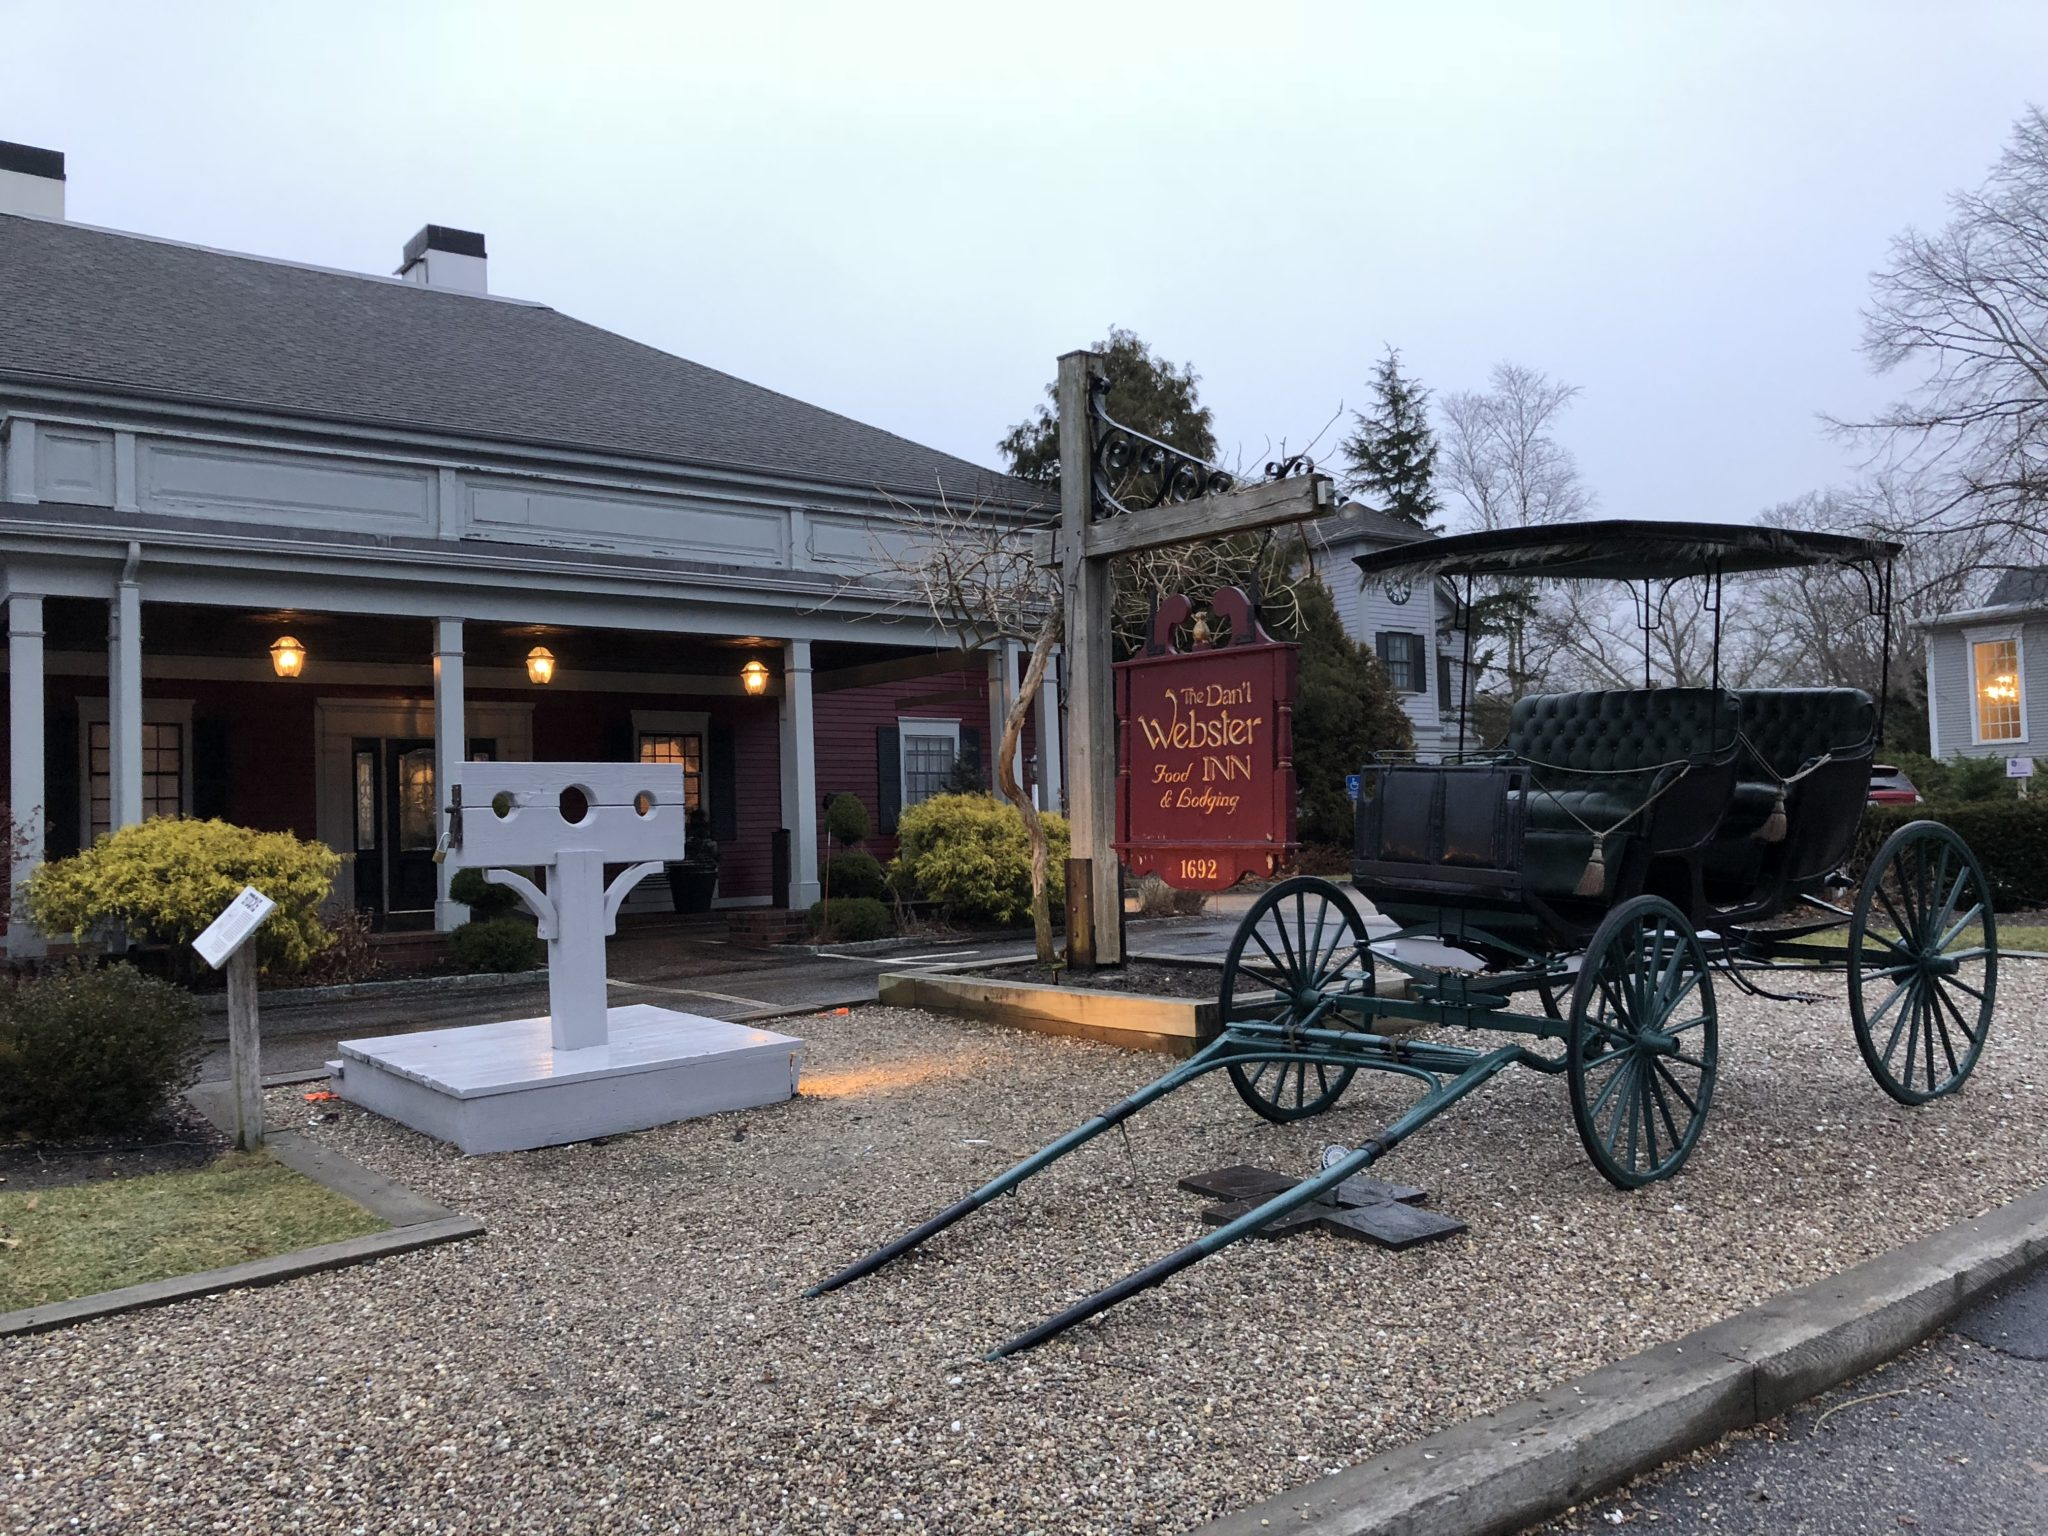 The Dan'l Webster Inn & Spa is the perfect destination for your Cape Cod vacation, business gathering, wedding or simply a quick Cape Cod getaway.